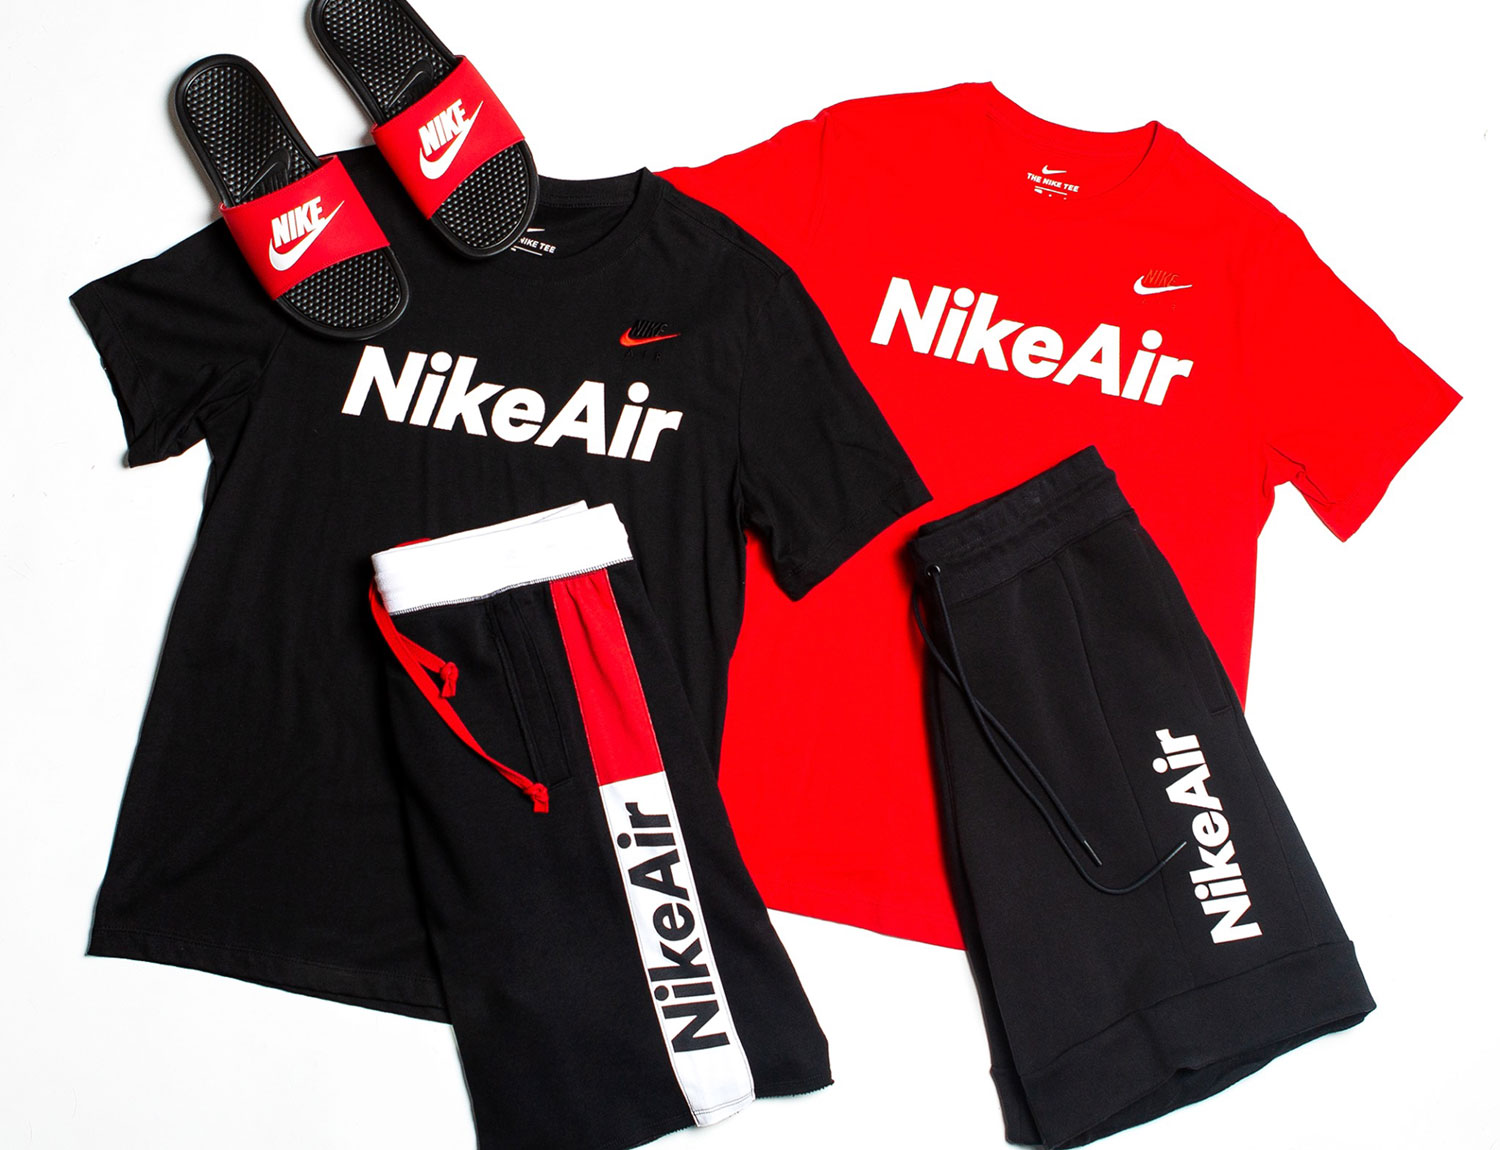 nike-air-black-red-white-apparel